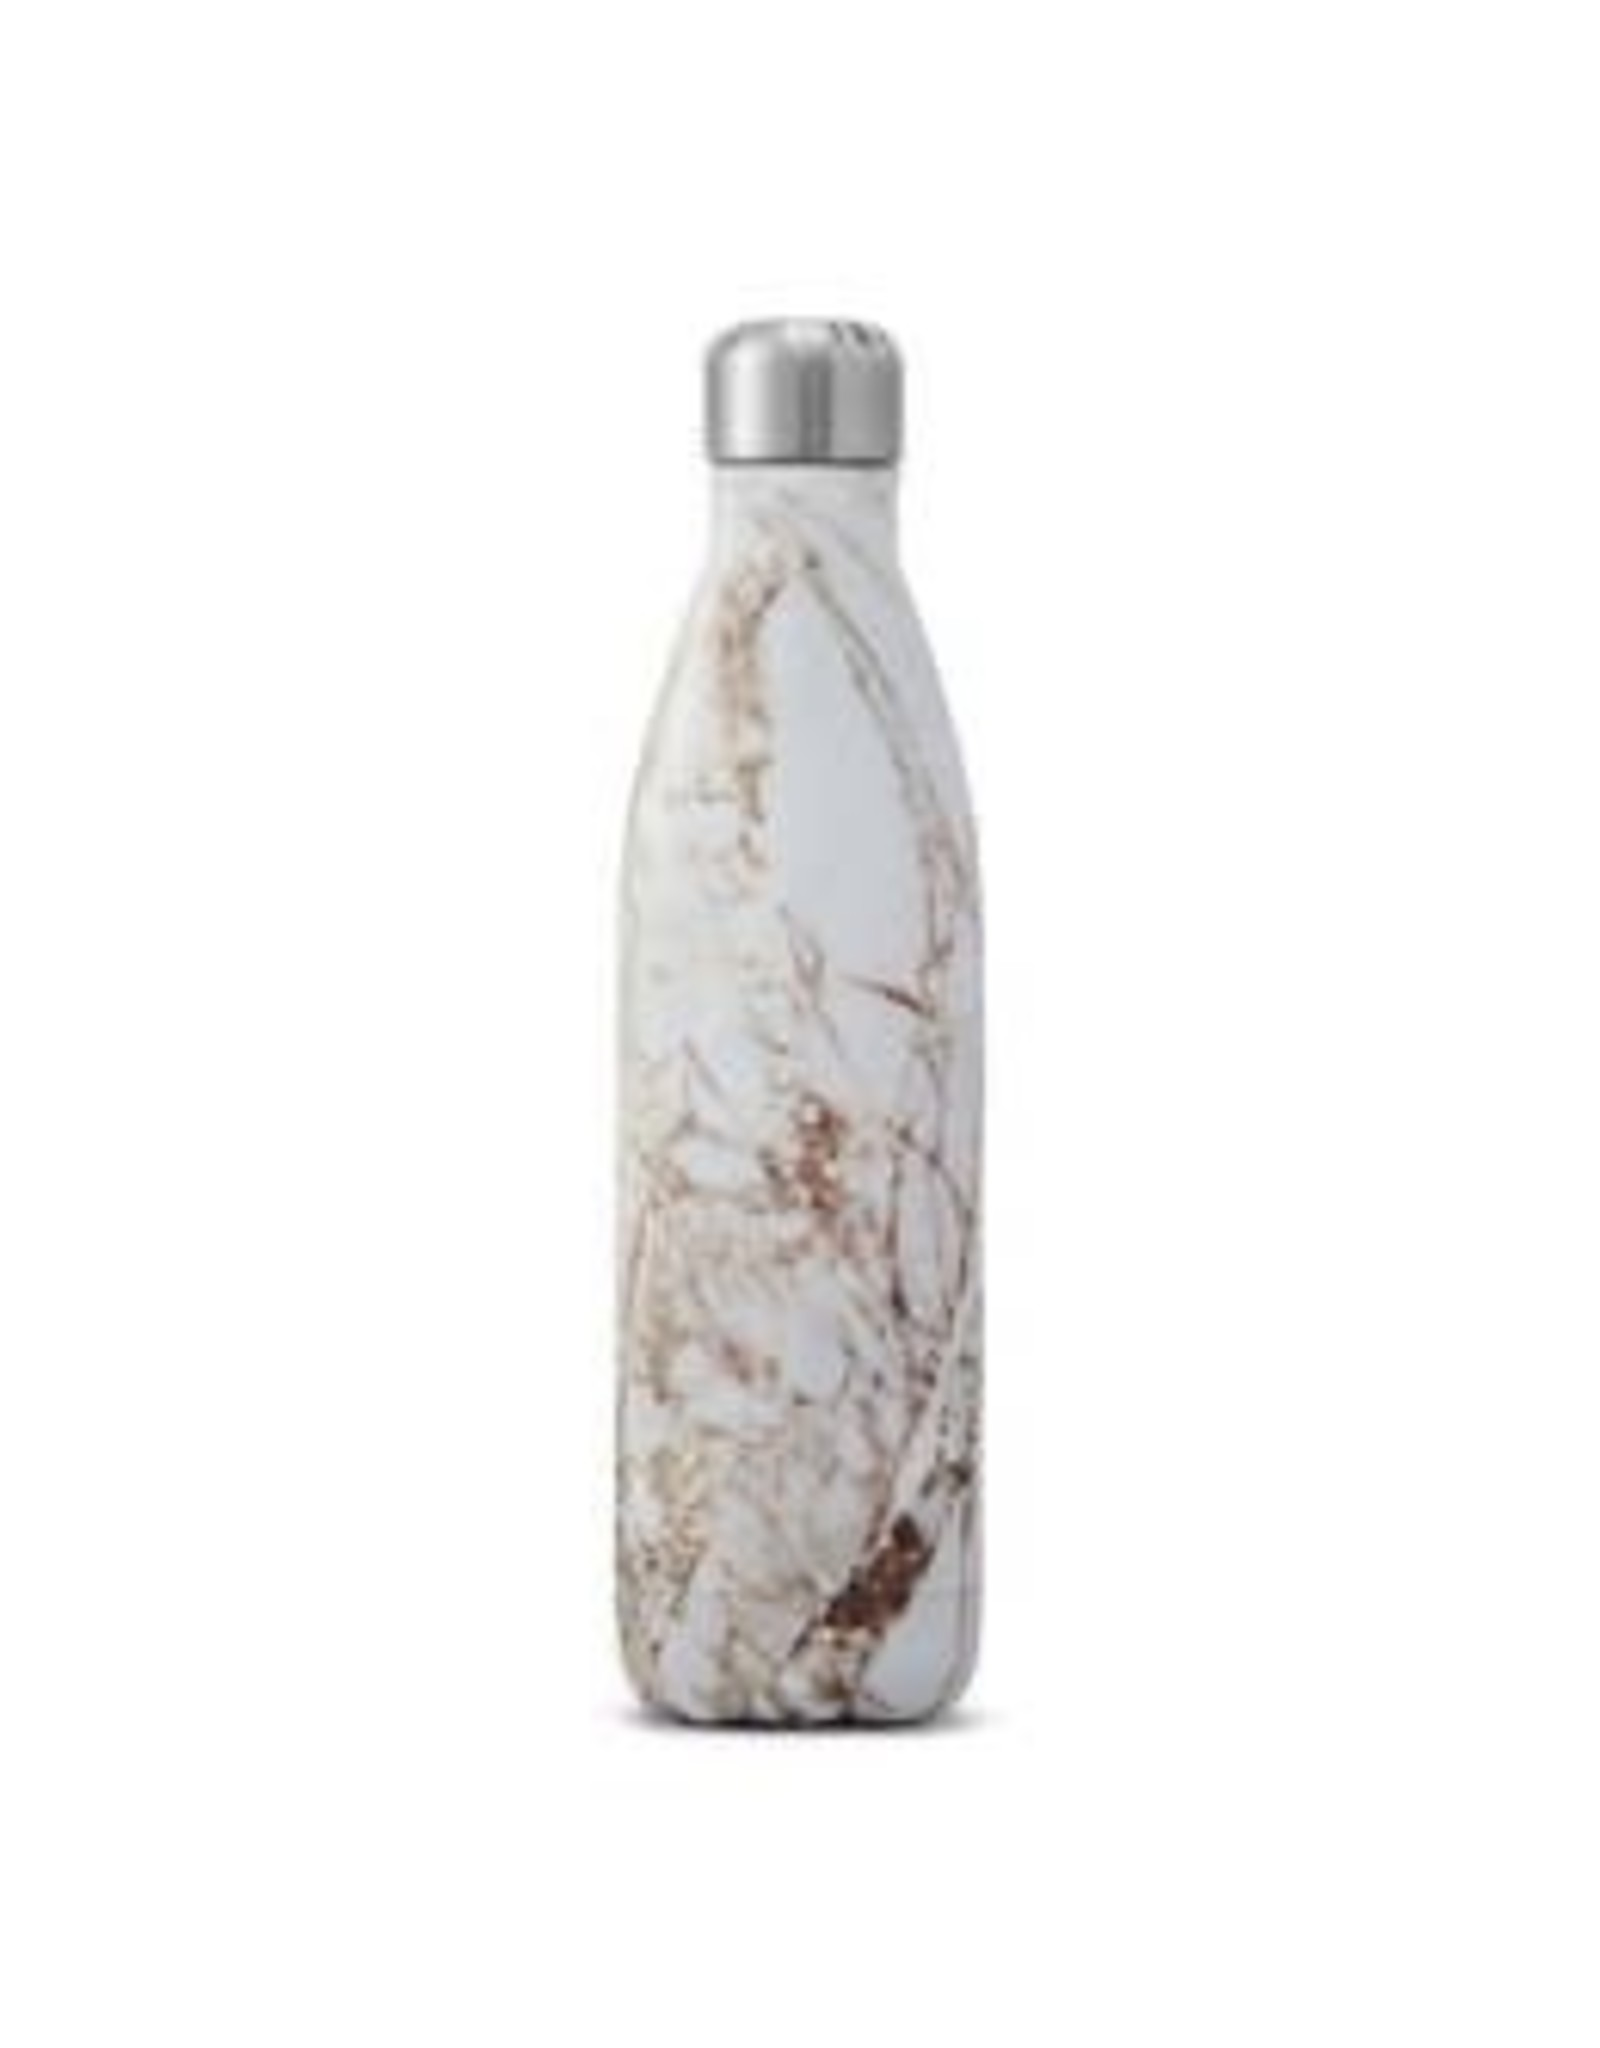 Swell Stainless Steel Water Bottle 25oz - Calcutta Gold